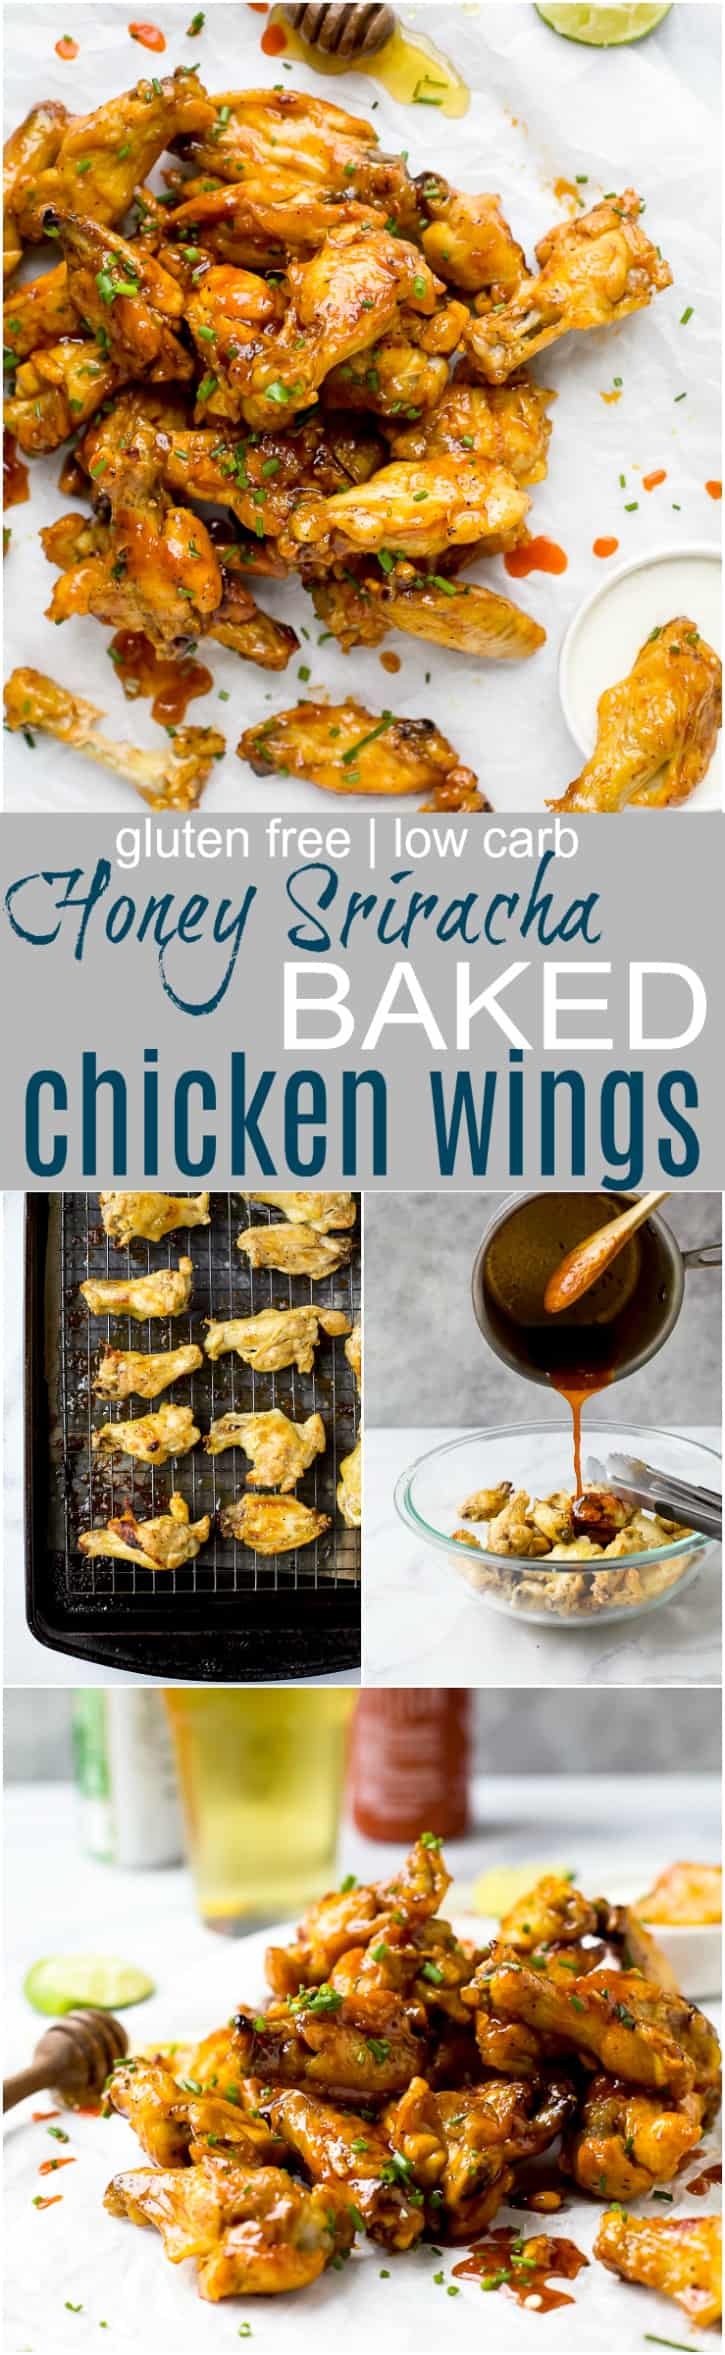 pinterest image for honey sriracha baked chicken wings